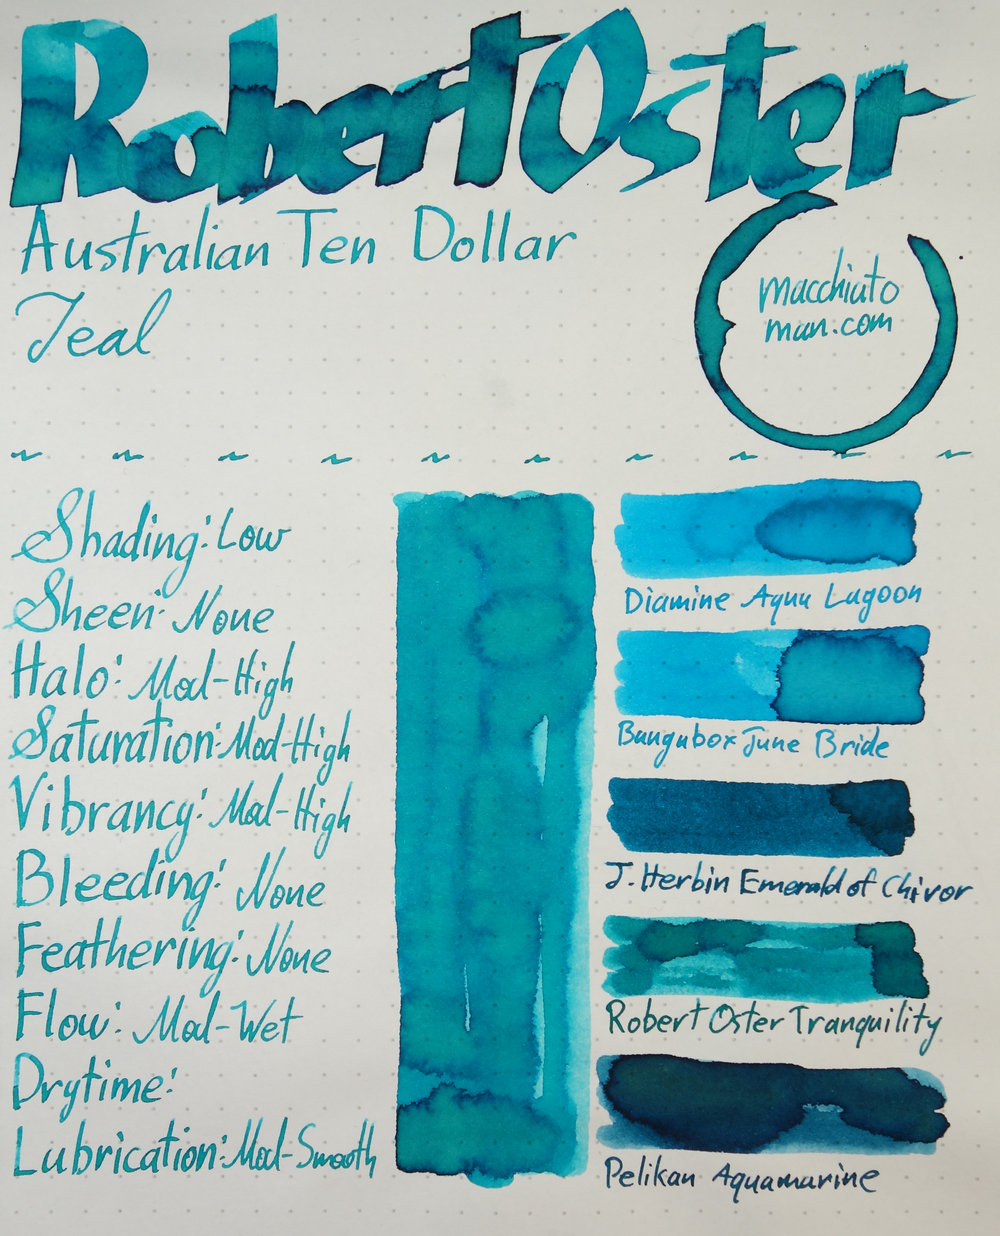 Teal Rhodia Review.jpg